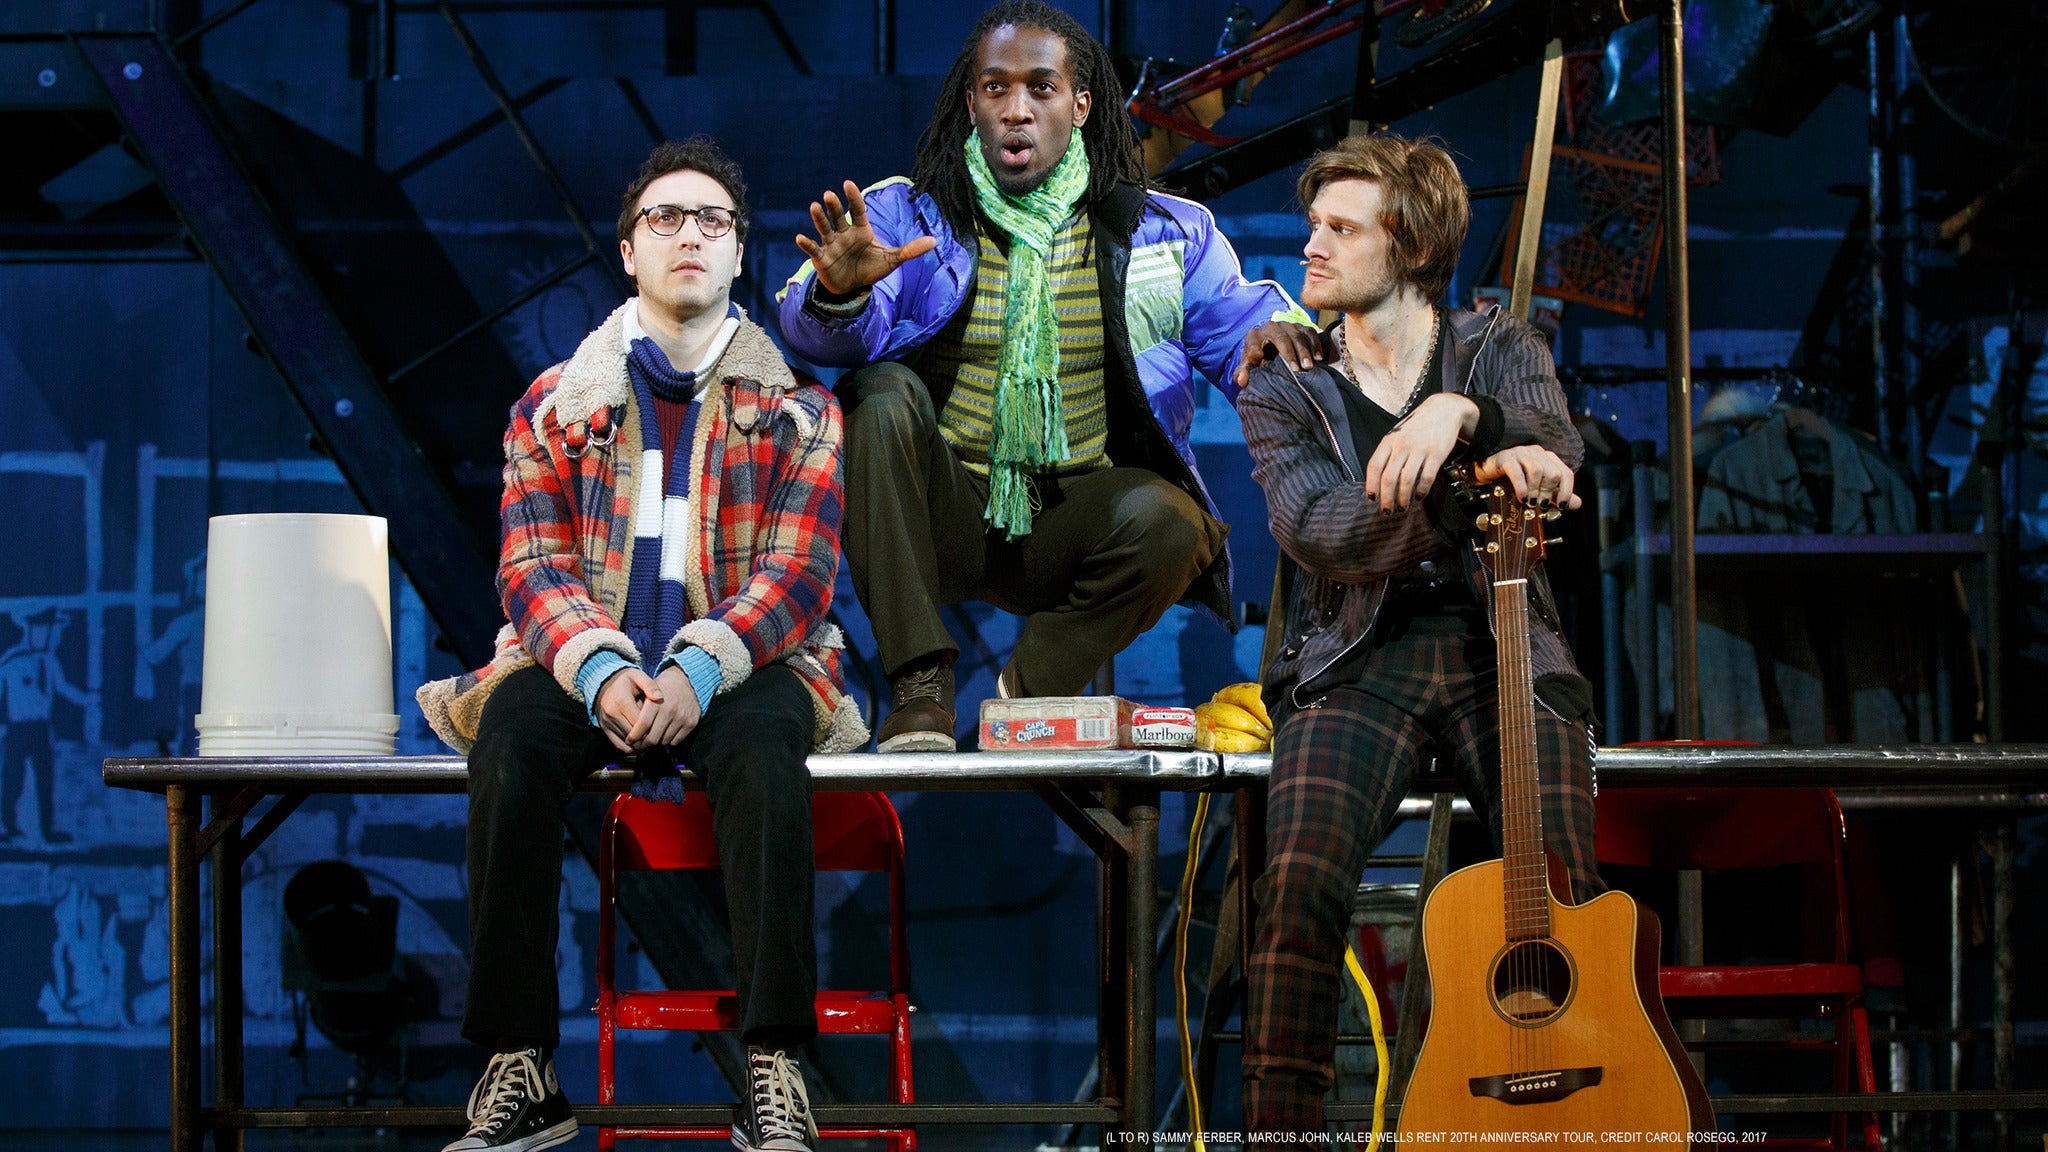 Rent at Merriam Theater - Philadelphia, PA 19102